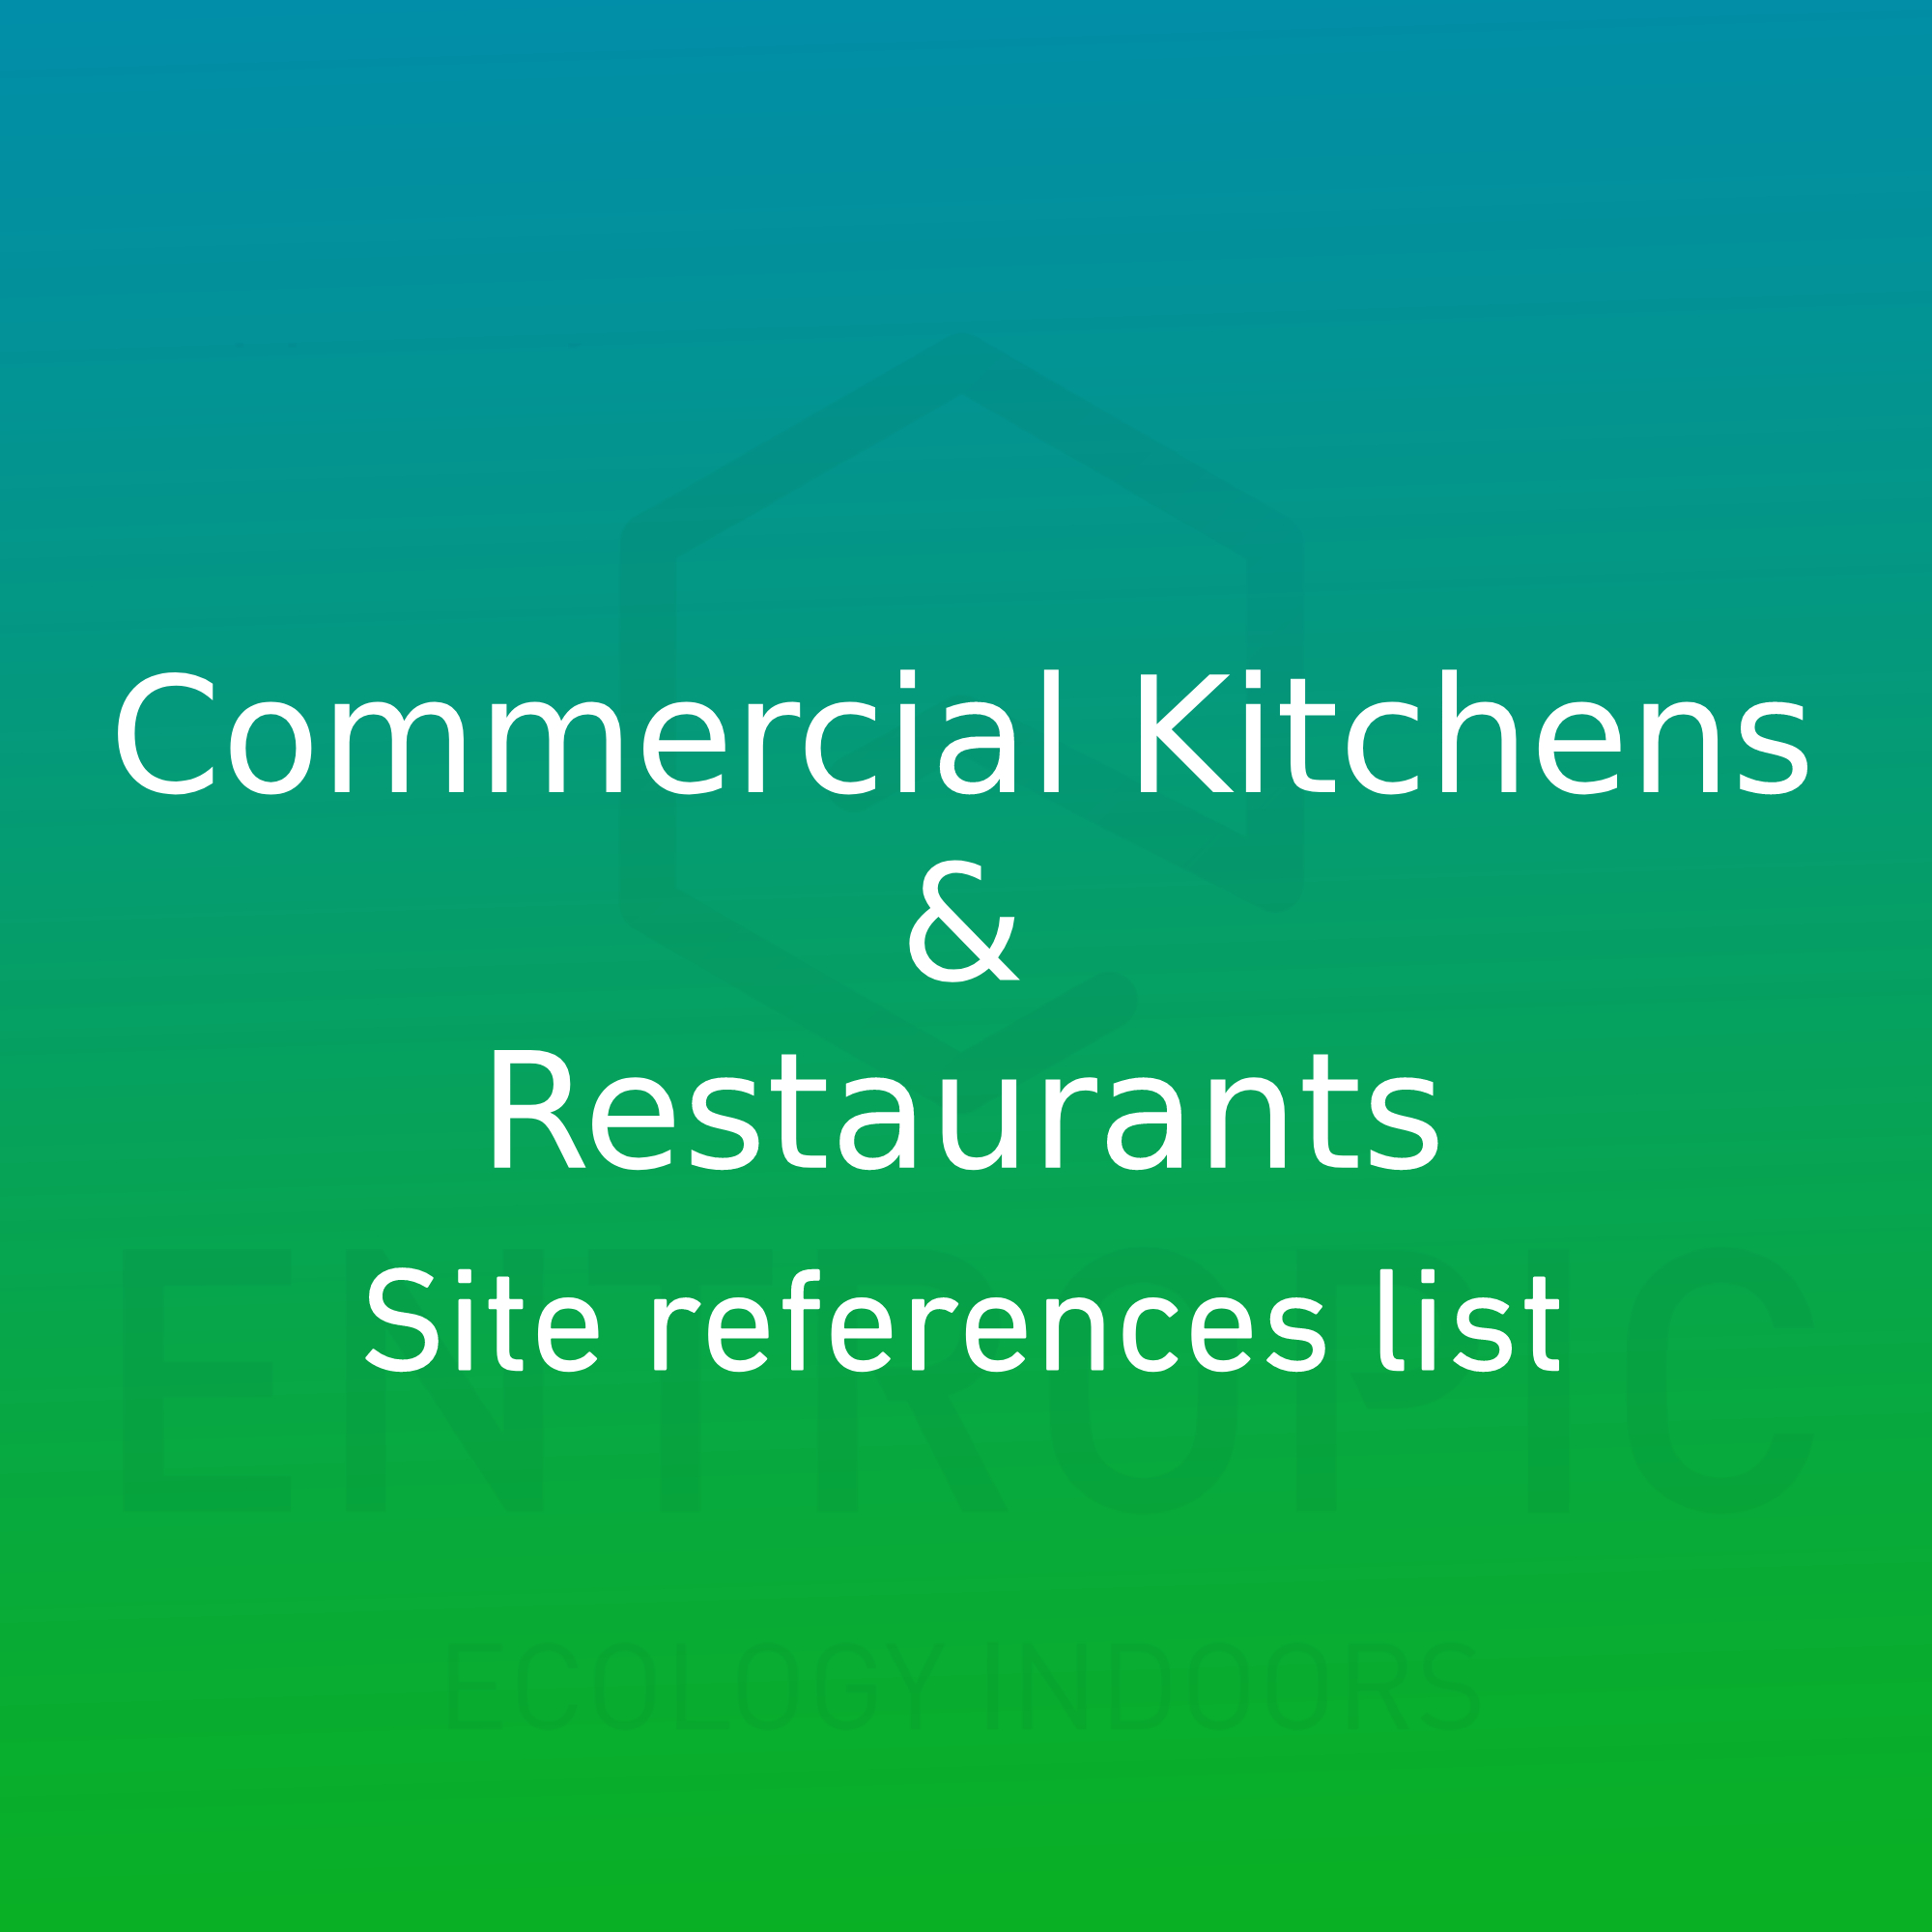 kitchens-site-reference-list